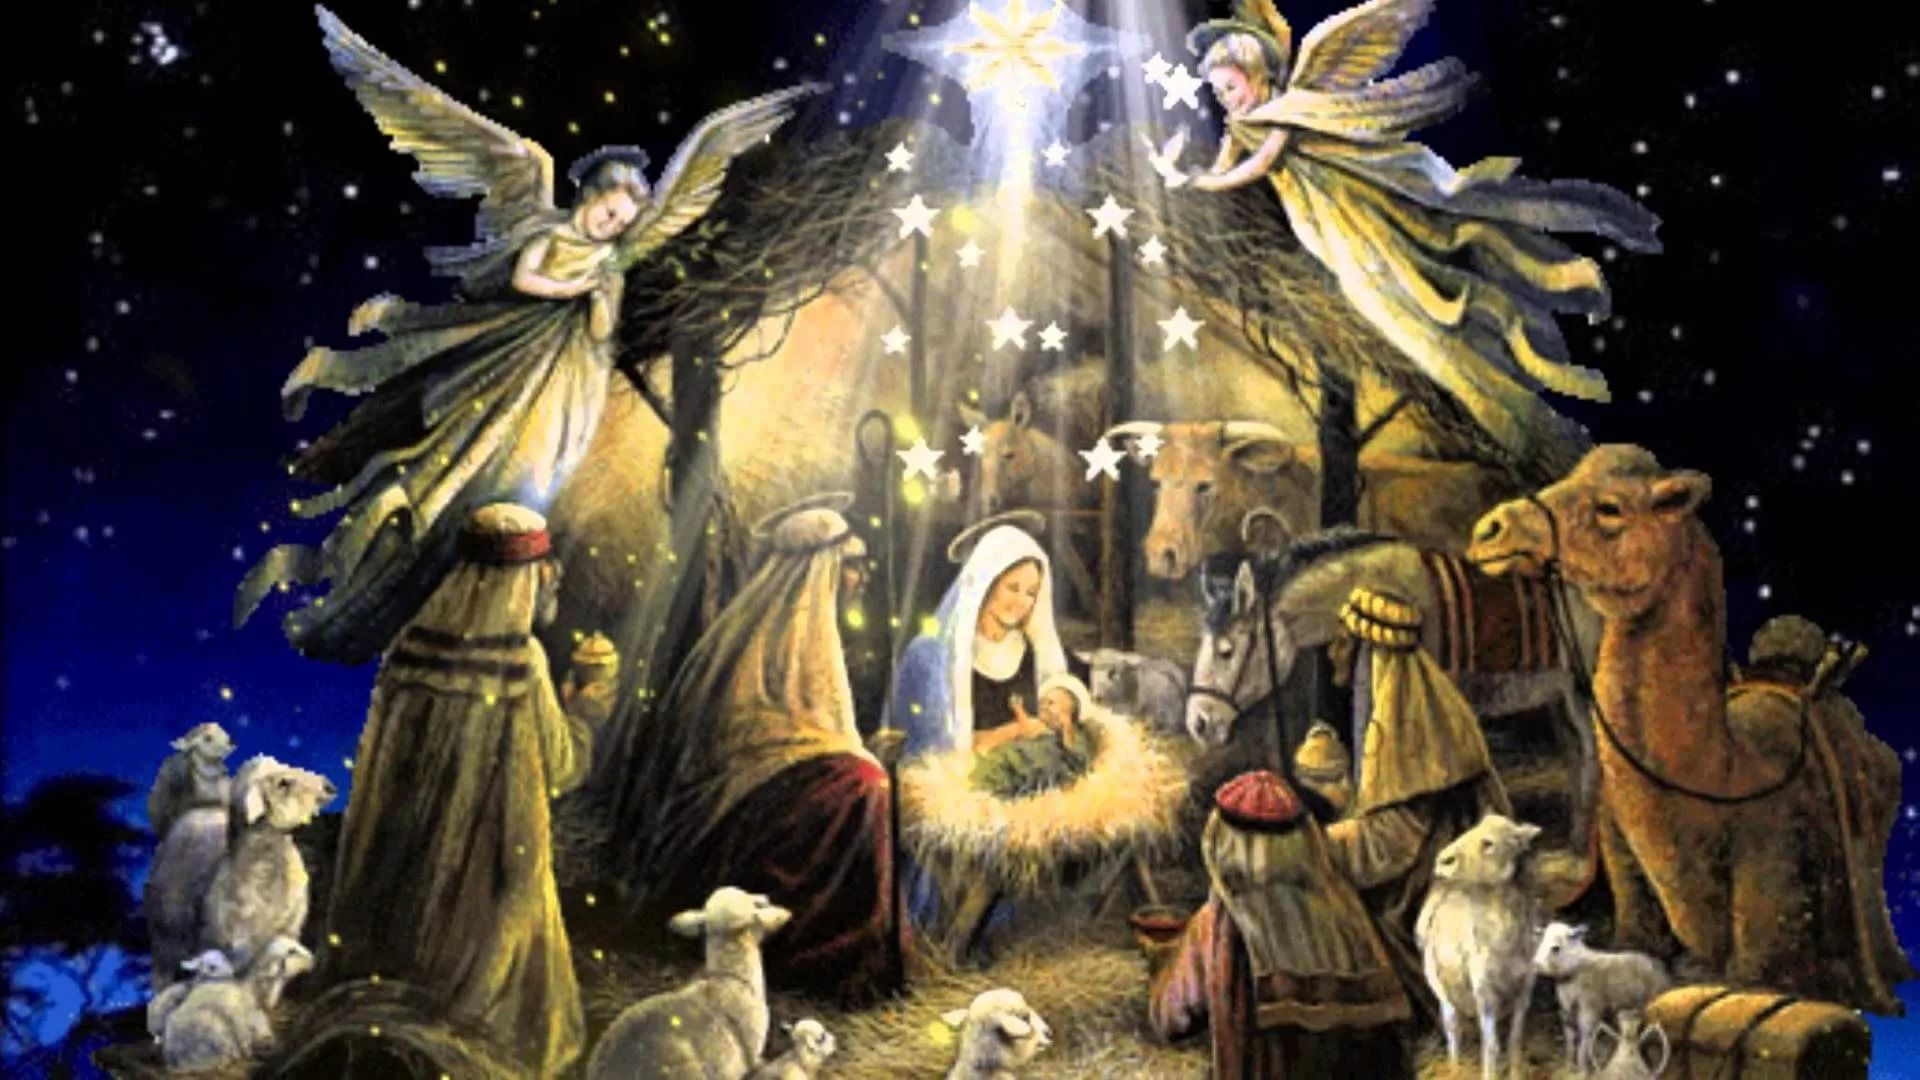 Christian Christmas download free wallpapers for pc in hd